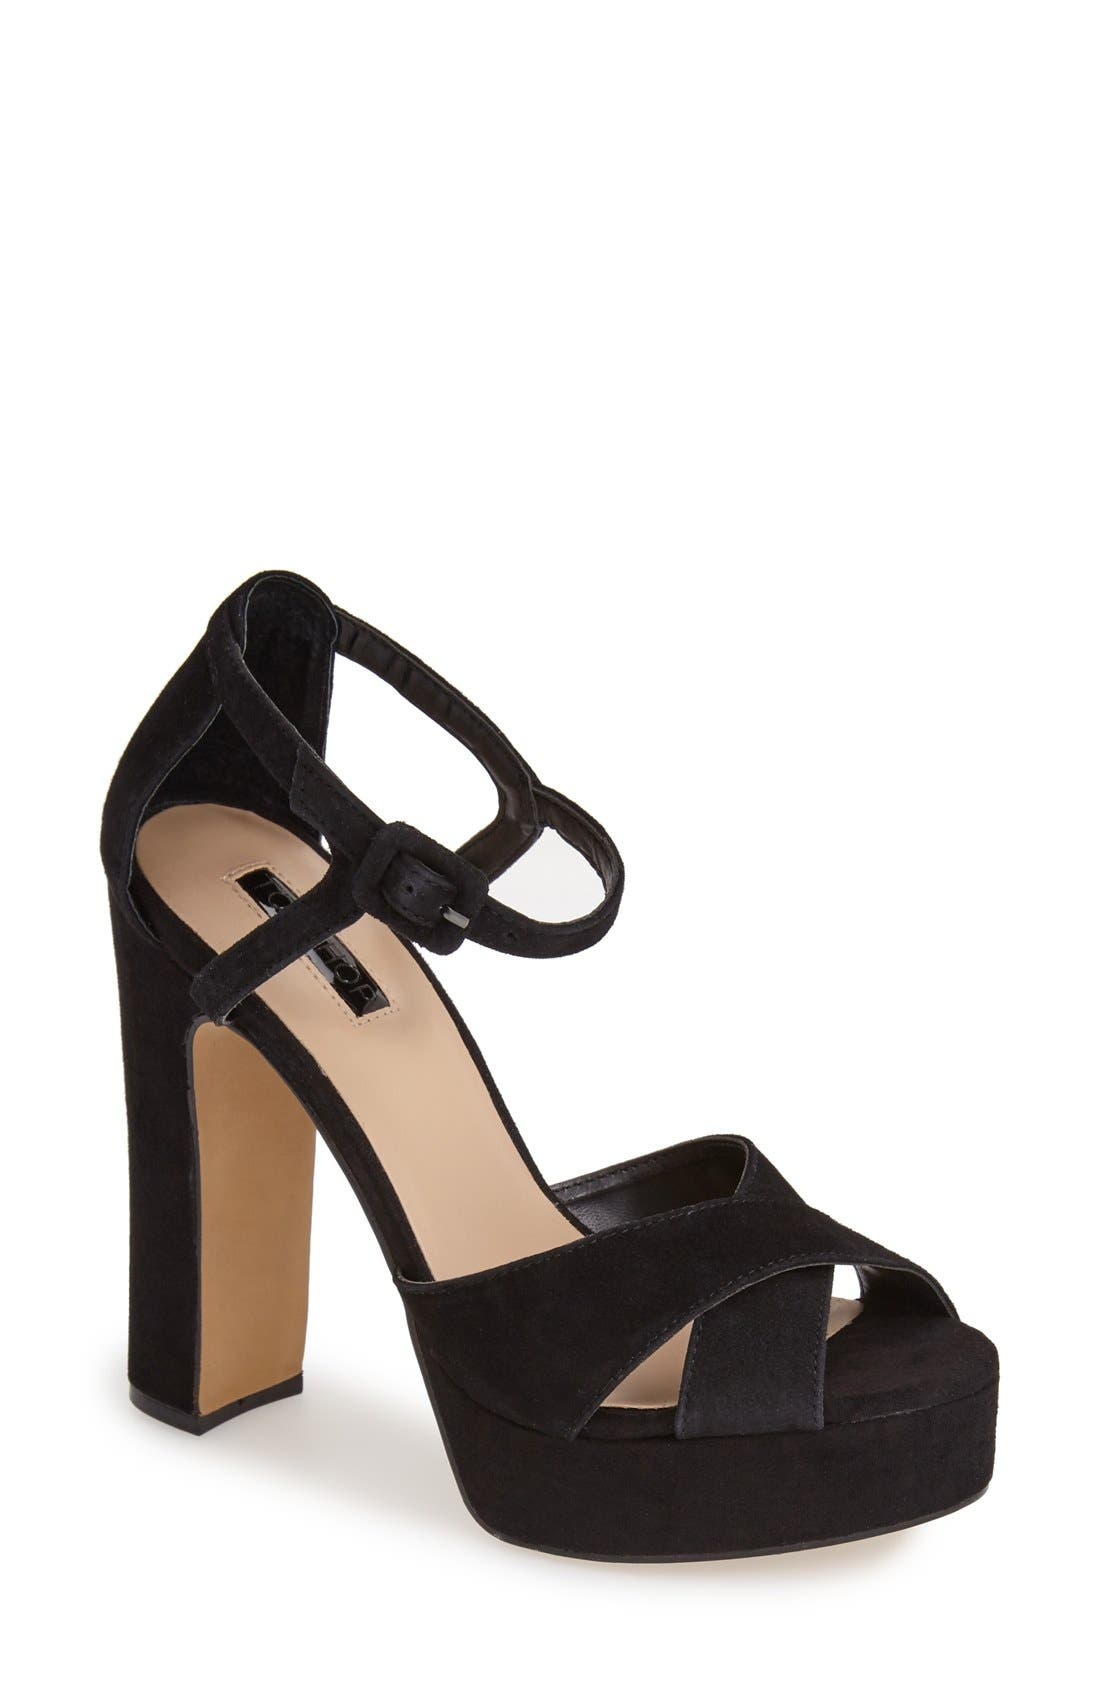 Alternate Image 1 Selected - Topshop 'Locket' Platform Suede Sandal (Women)